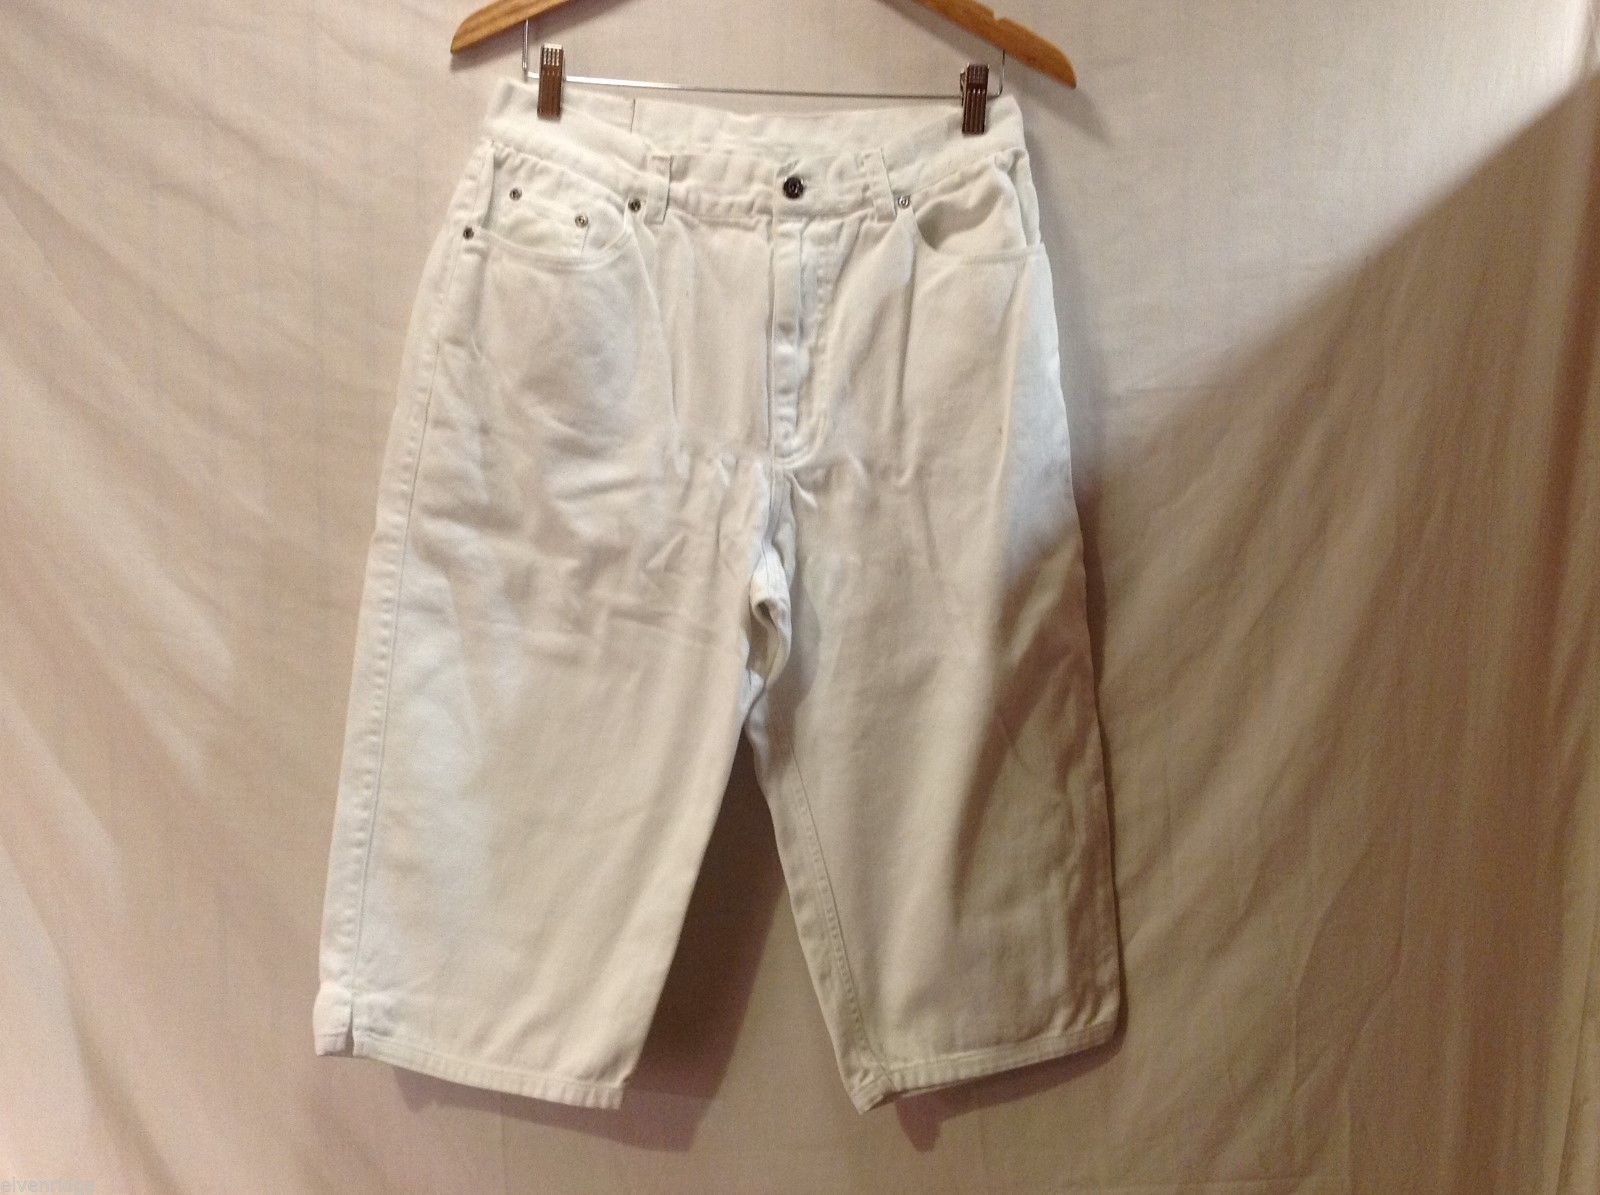 Womens Crazy Horse by Liz Claiborne White Denim Capris, Size 12